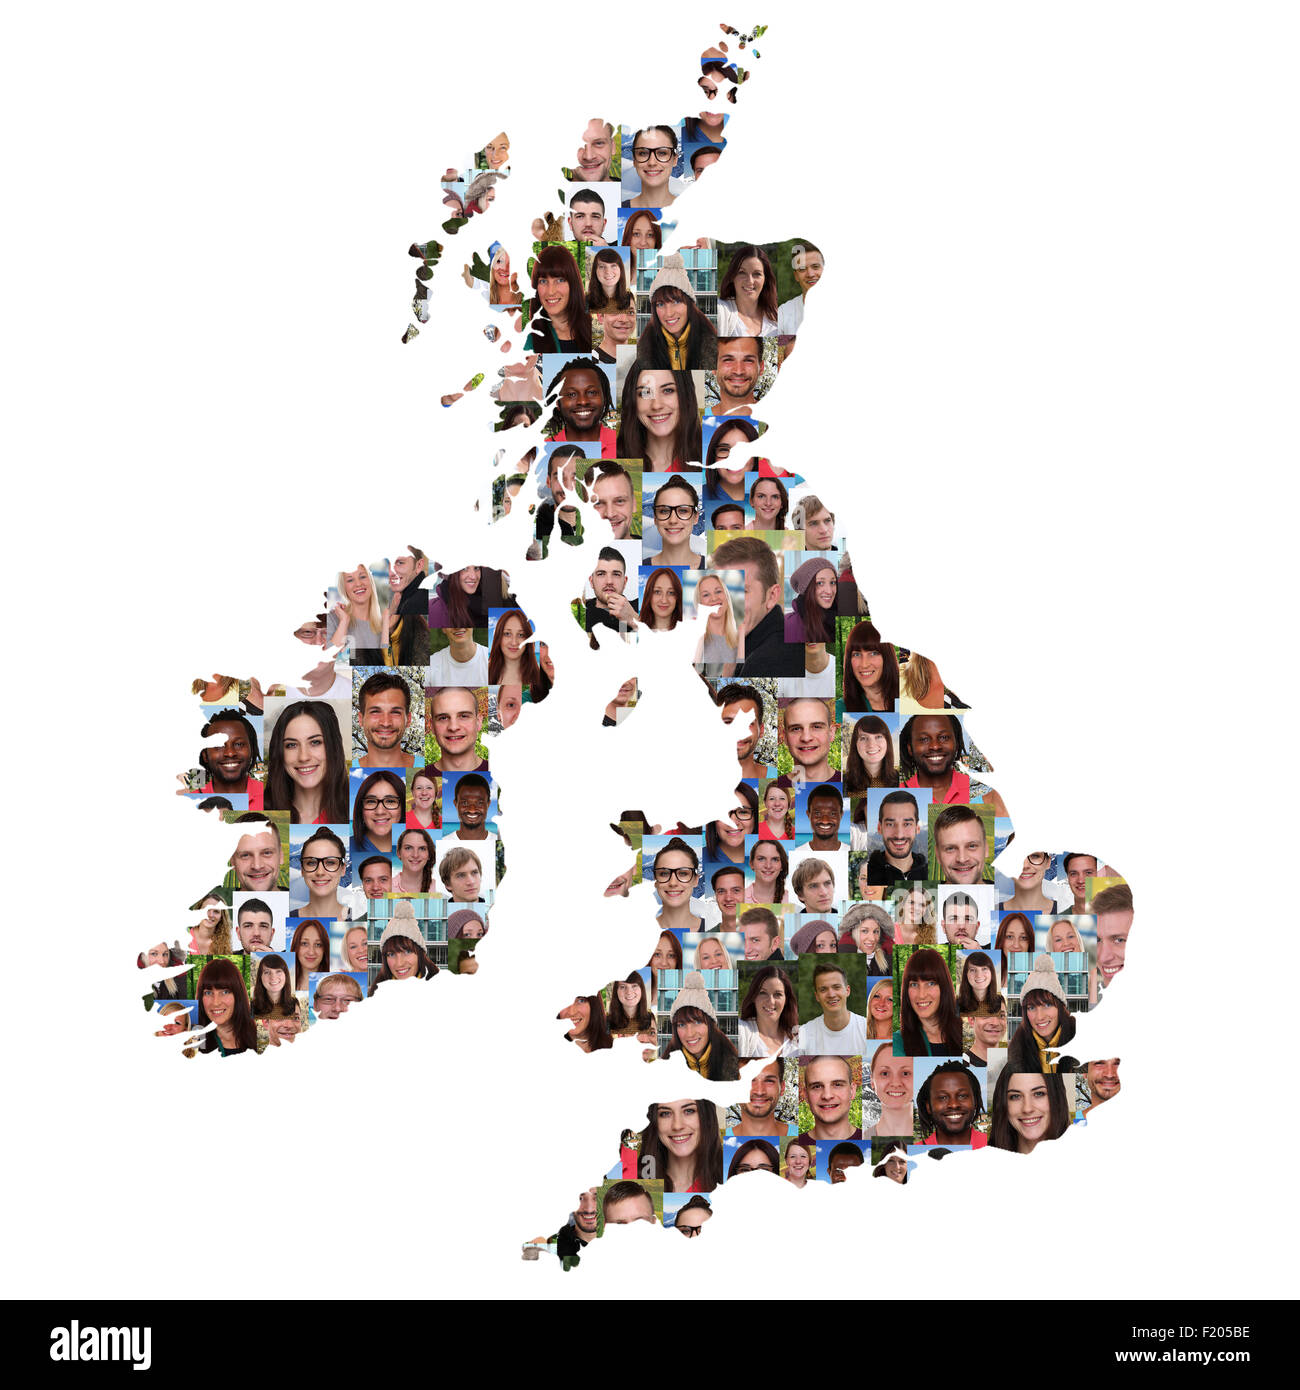 Great Britain and Ireland map multicultural group of young people integration diversity isolated - Stock Image